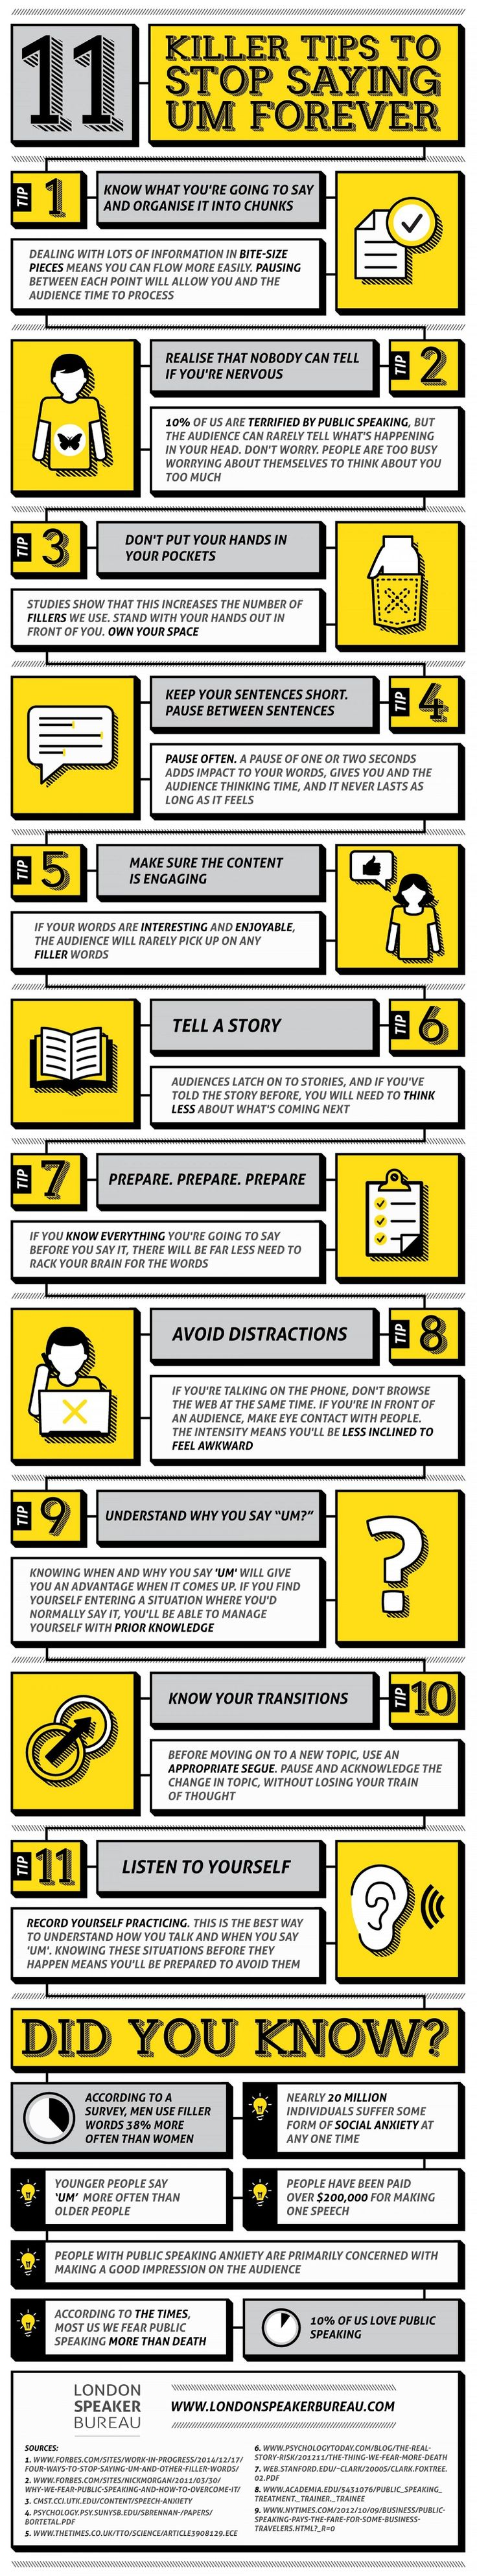 11 Killer Tips to Stop Saying 'Um' Forever #infographic ~ Visualistan